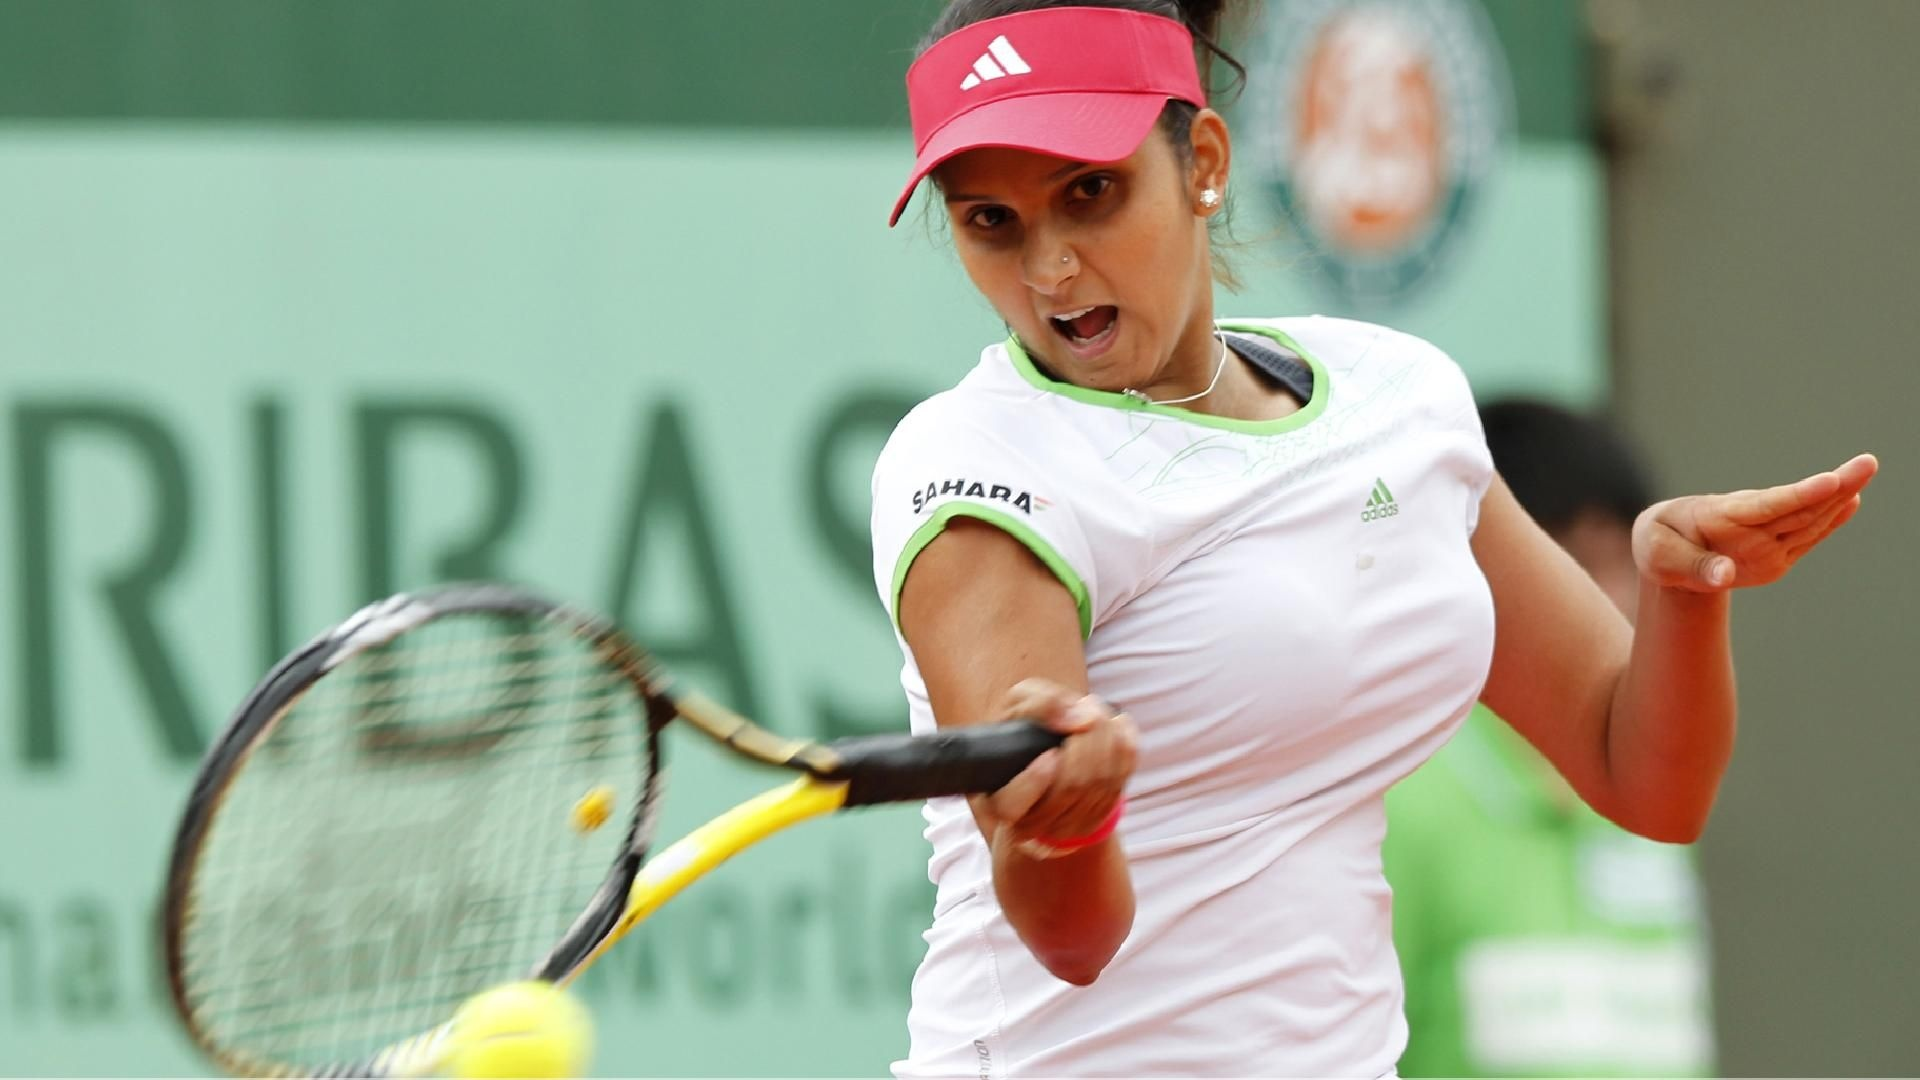 Sania Mirza 2012 128.52 Kb